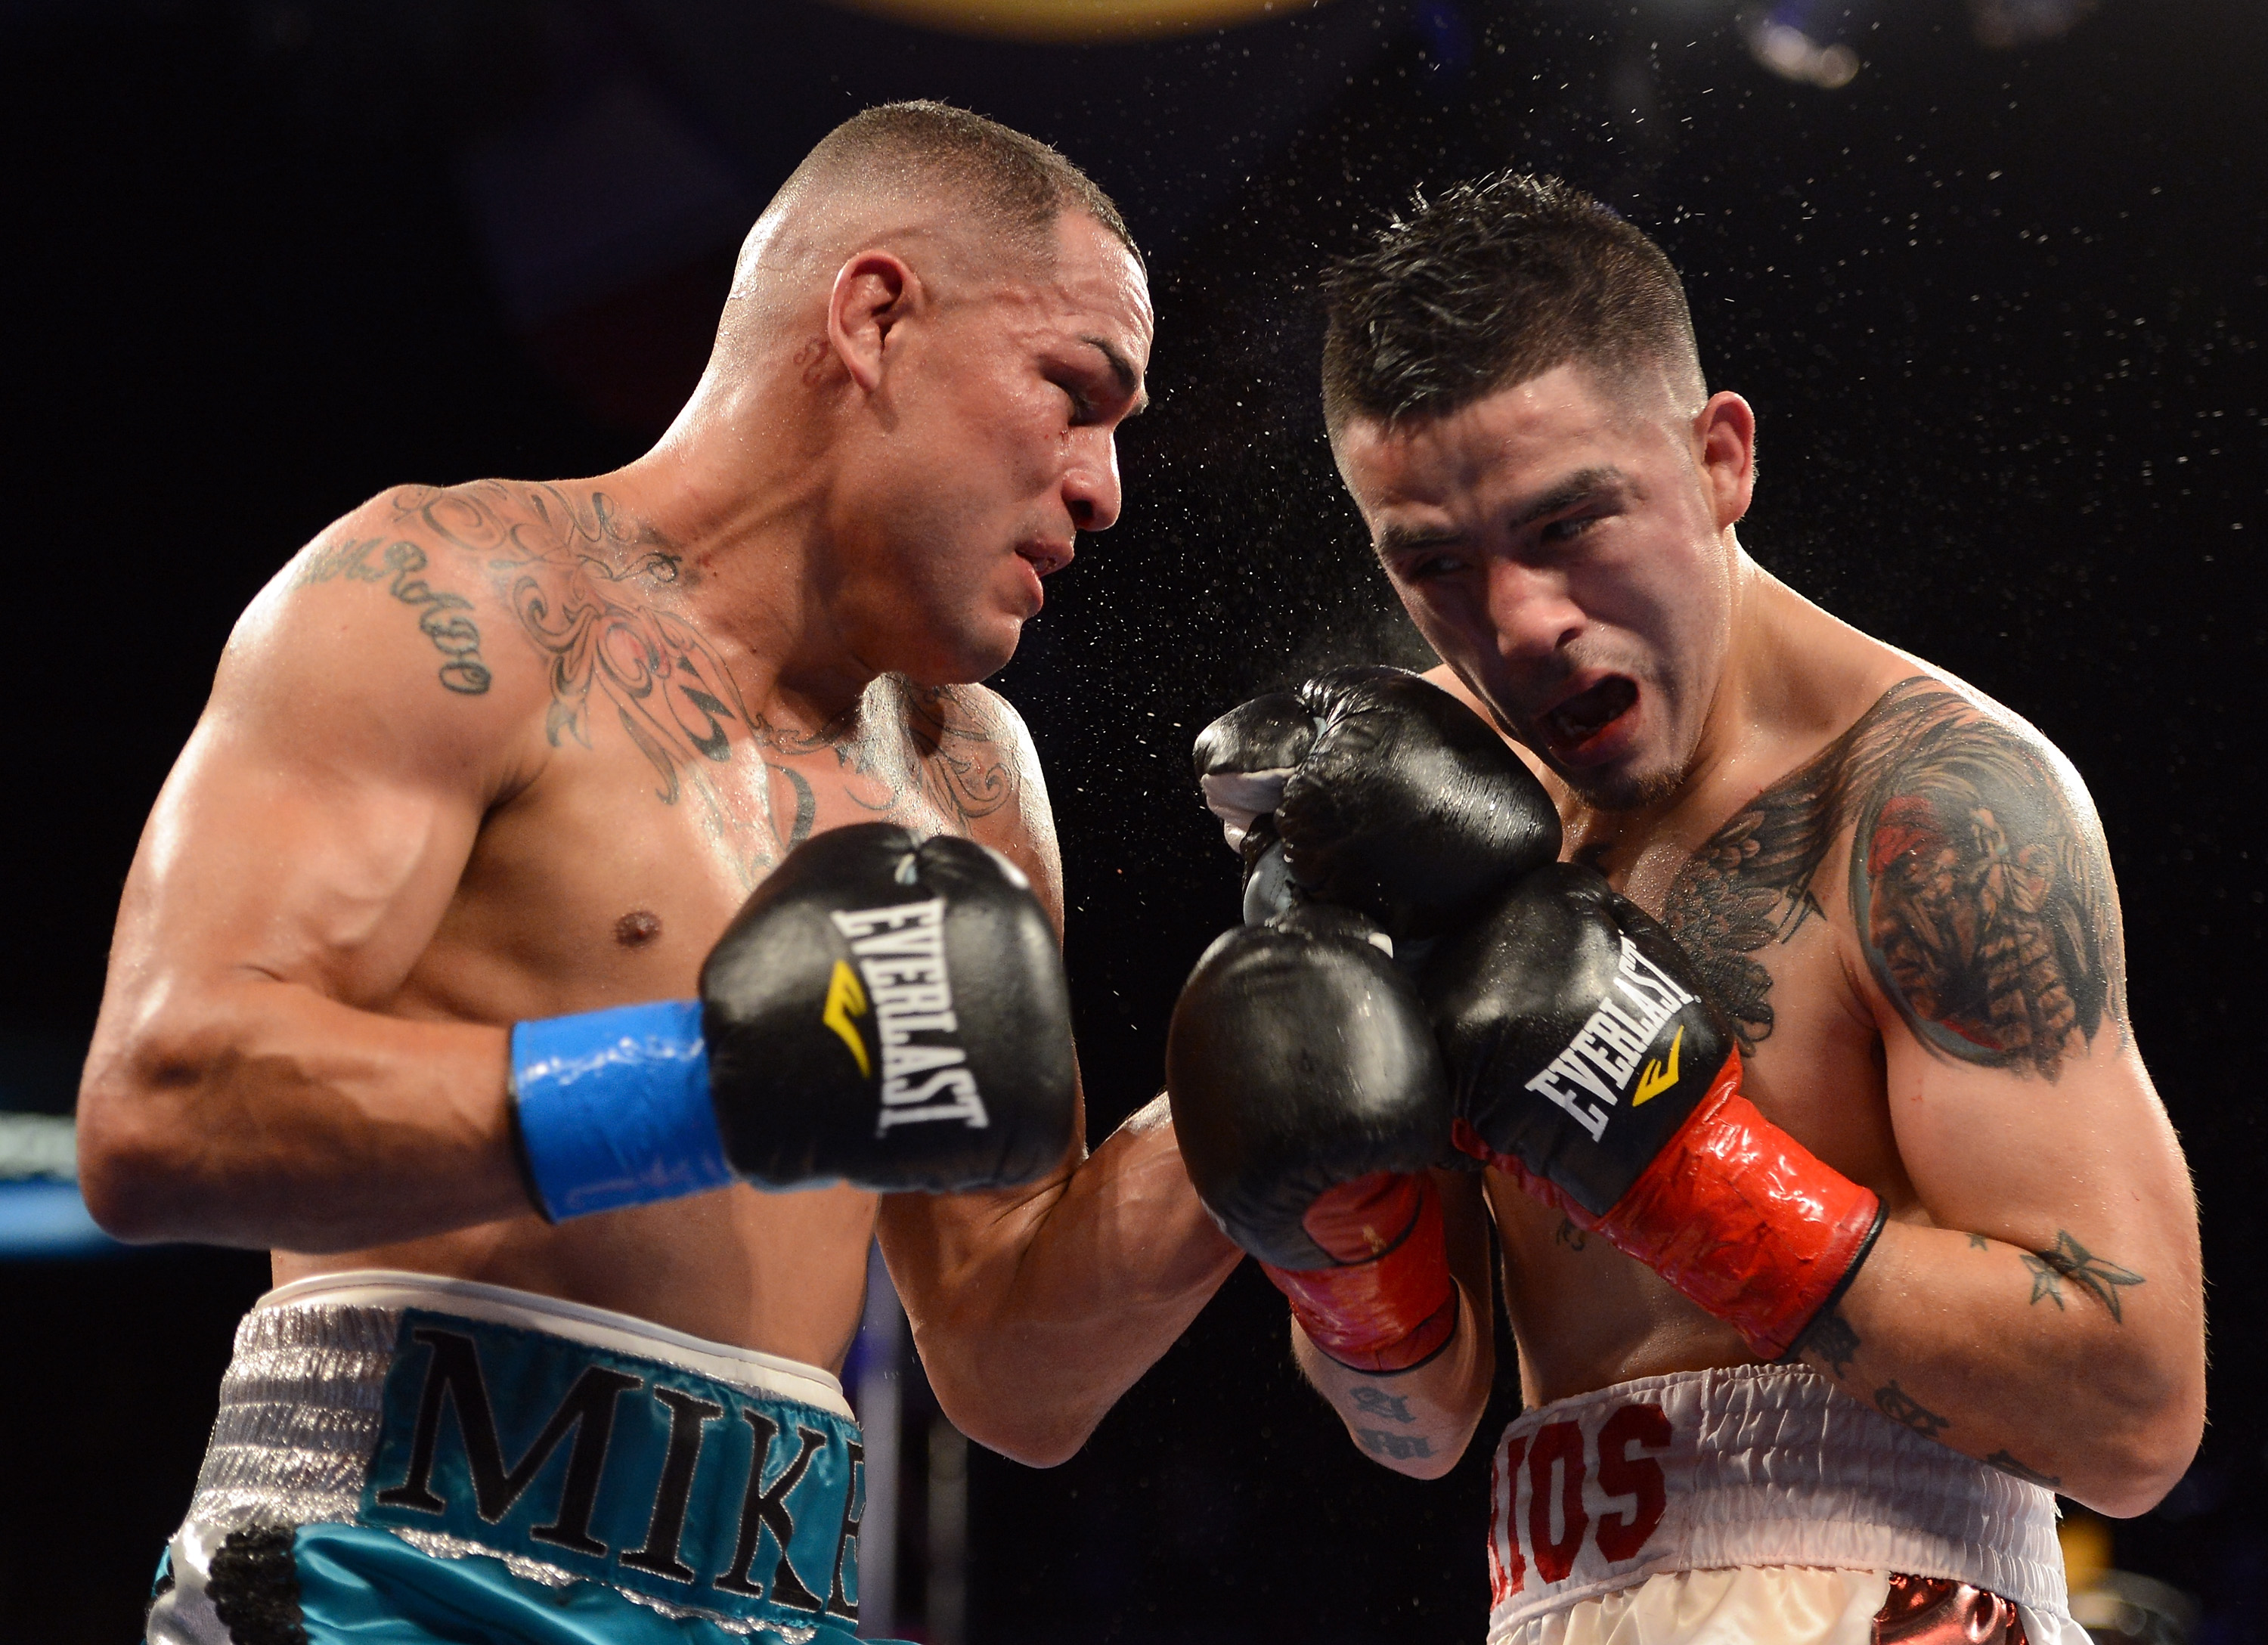 Mike Alvarado (left) doled out some serious punishment before being stopped by Brandon Rios. (Getty Images)